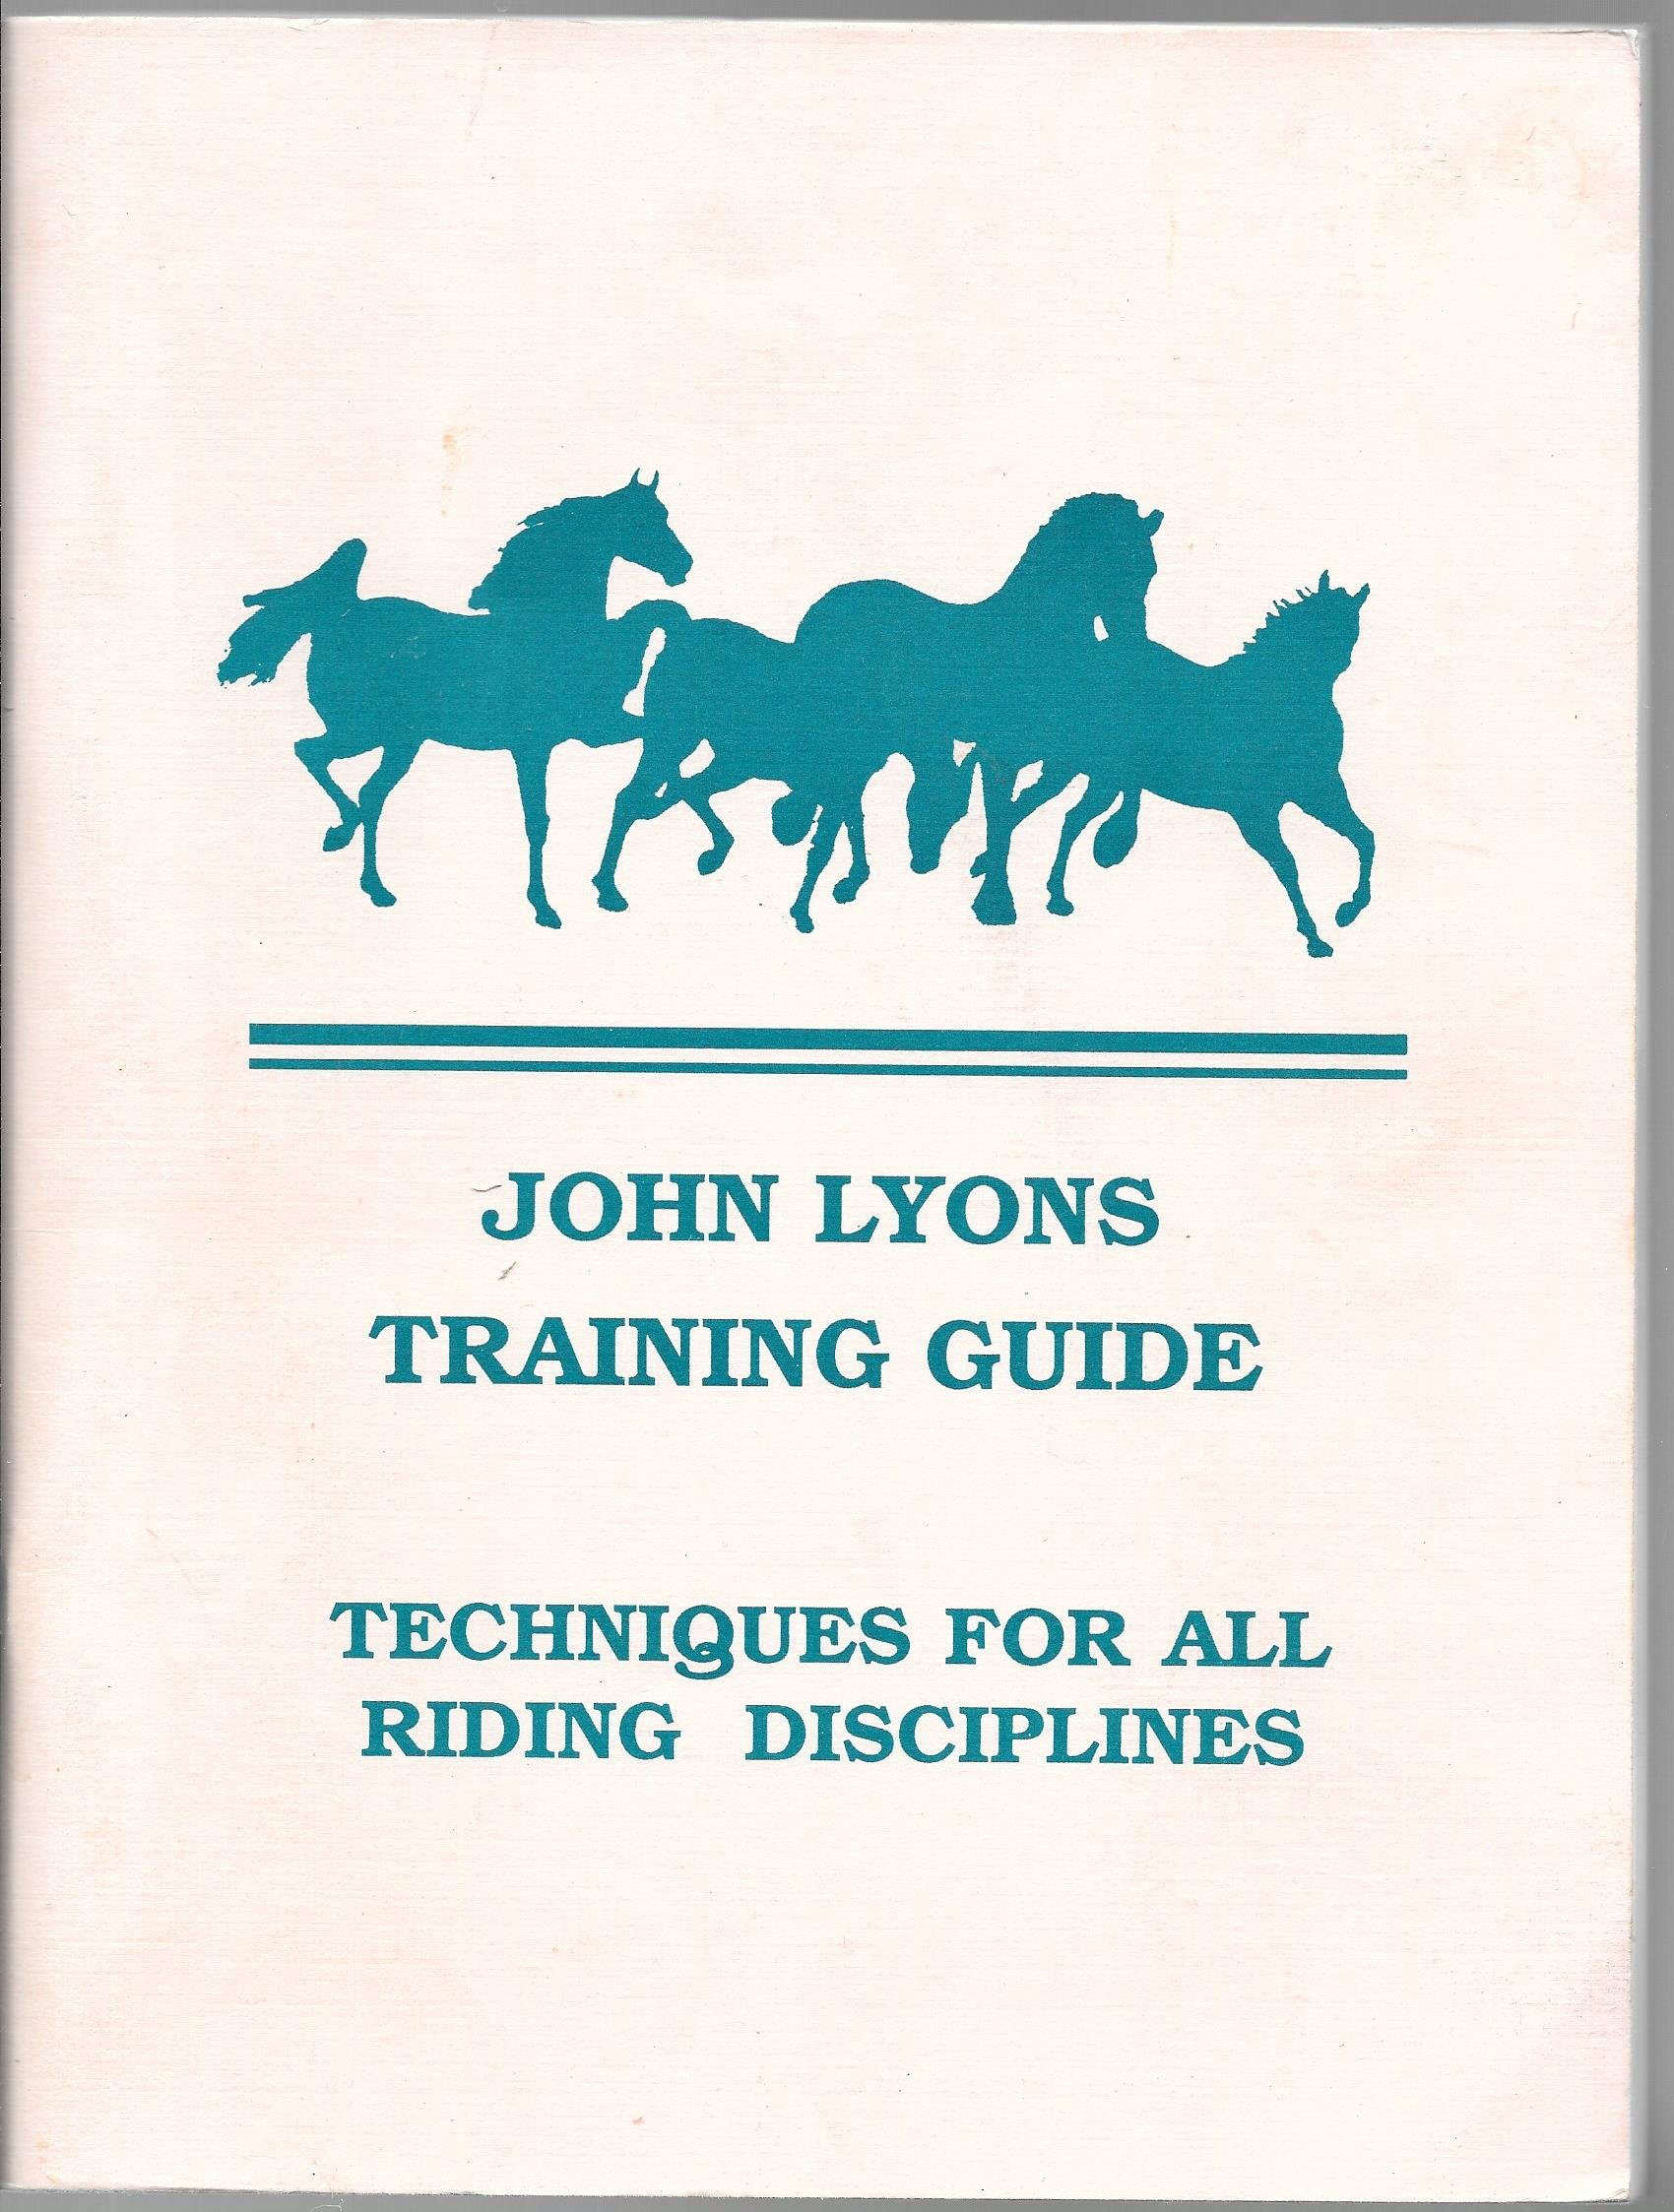 John Lyons training guide: Techniques for all riding disciplines